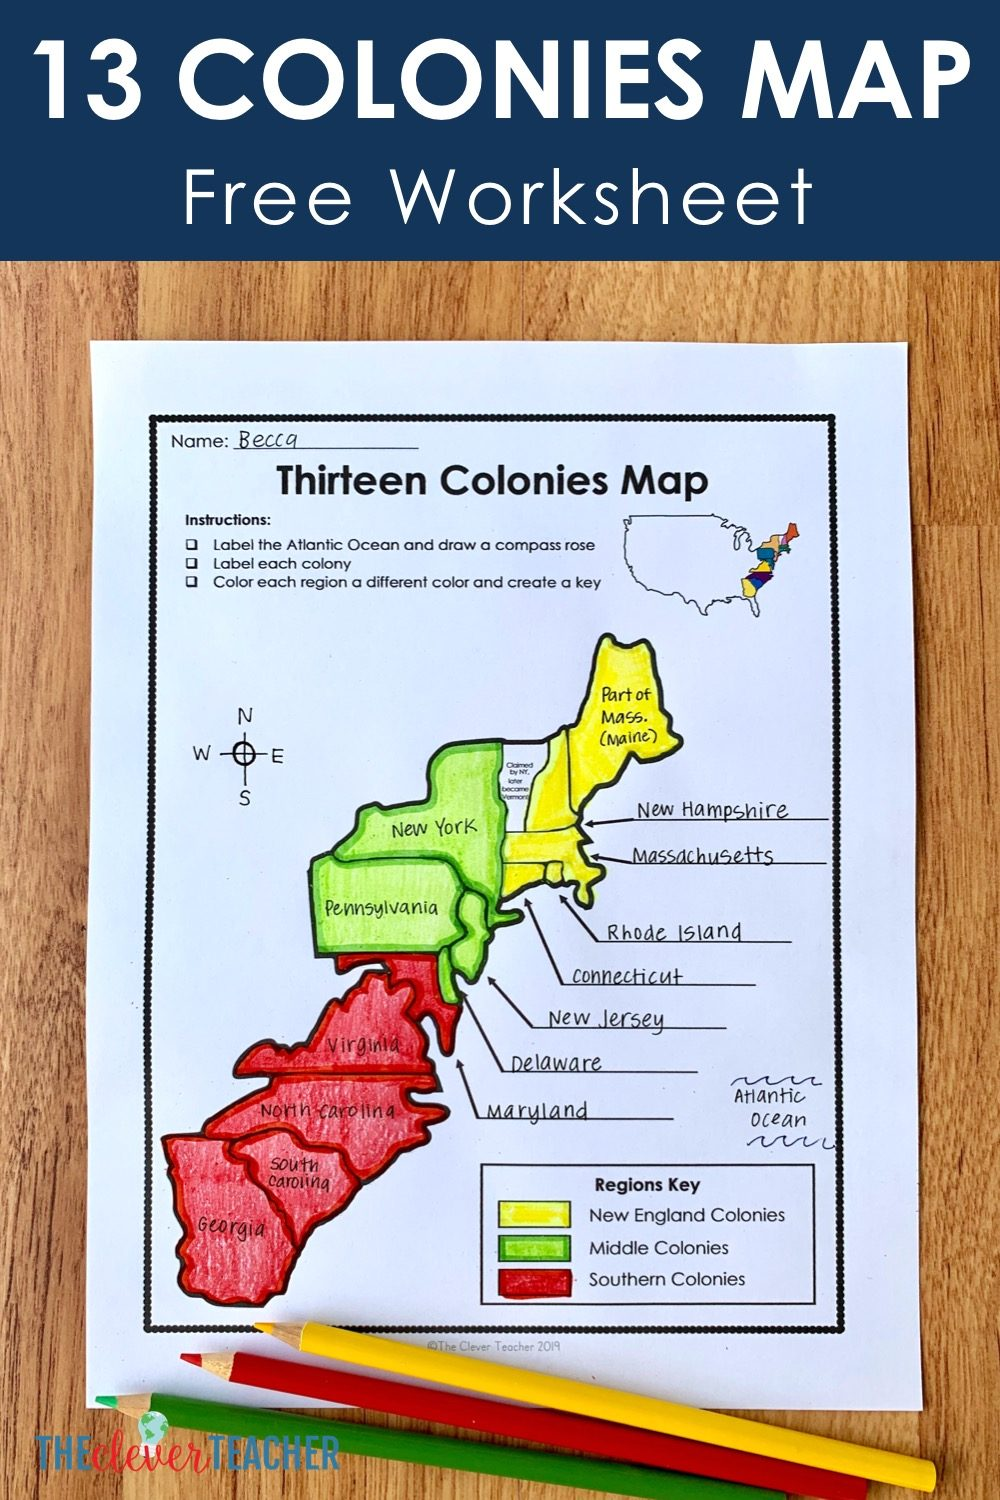 13 Colonies Free Map Worksheet and Lesson for students [ 1500 x 1000 Pixel ]